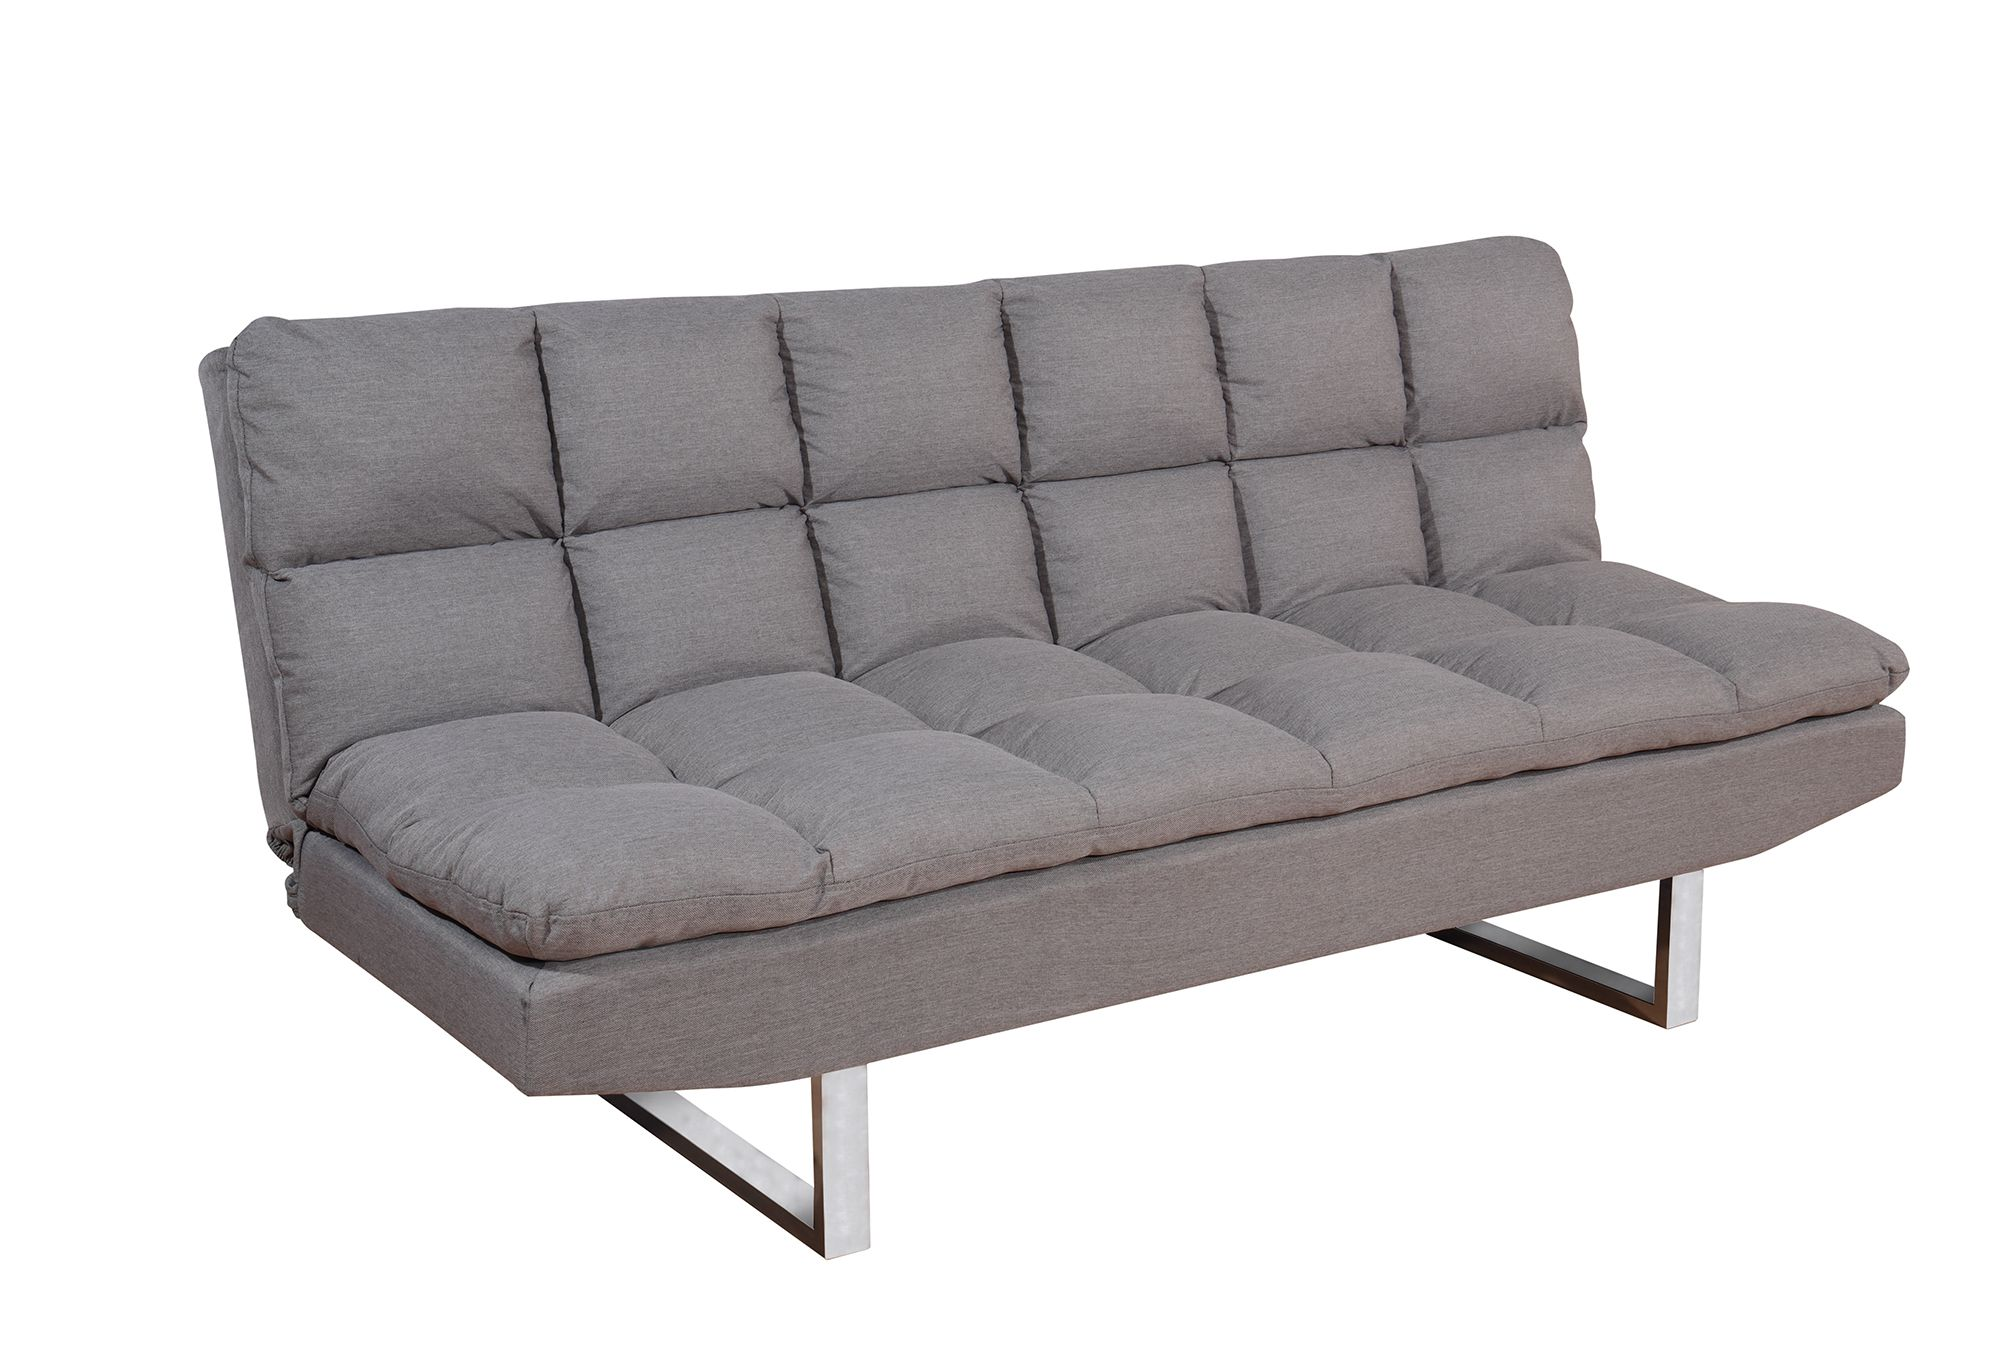 Meubles sofa bed home for Meuble sofa montreal